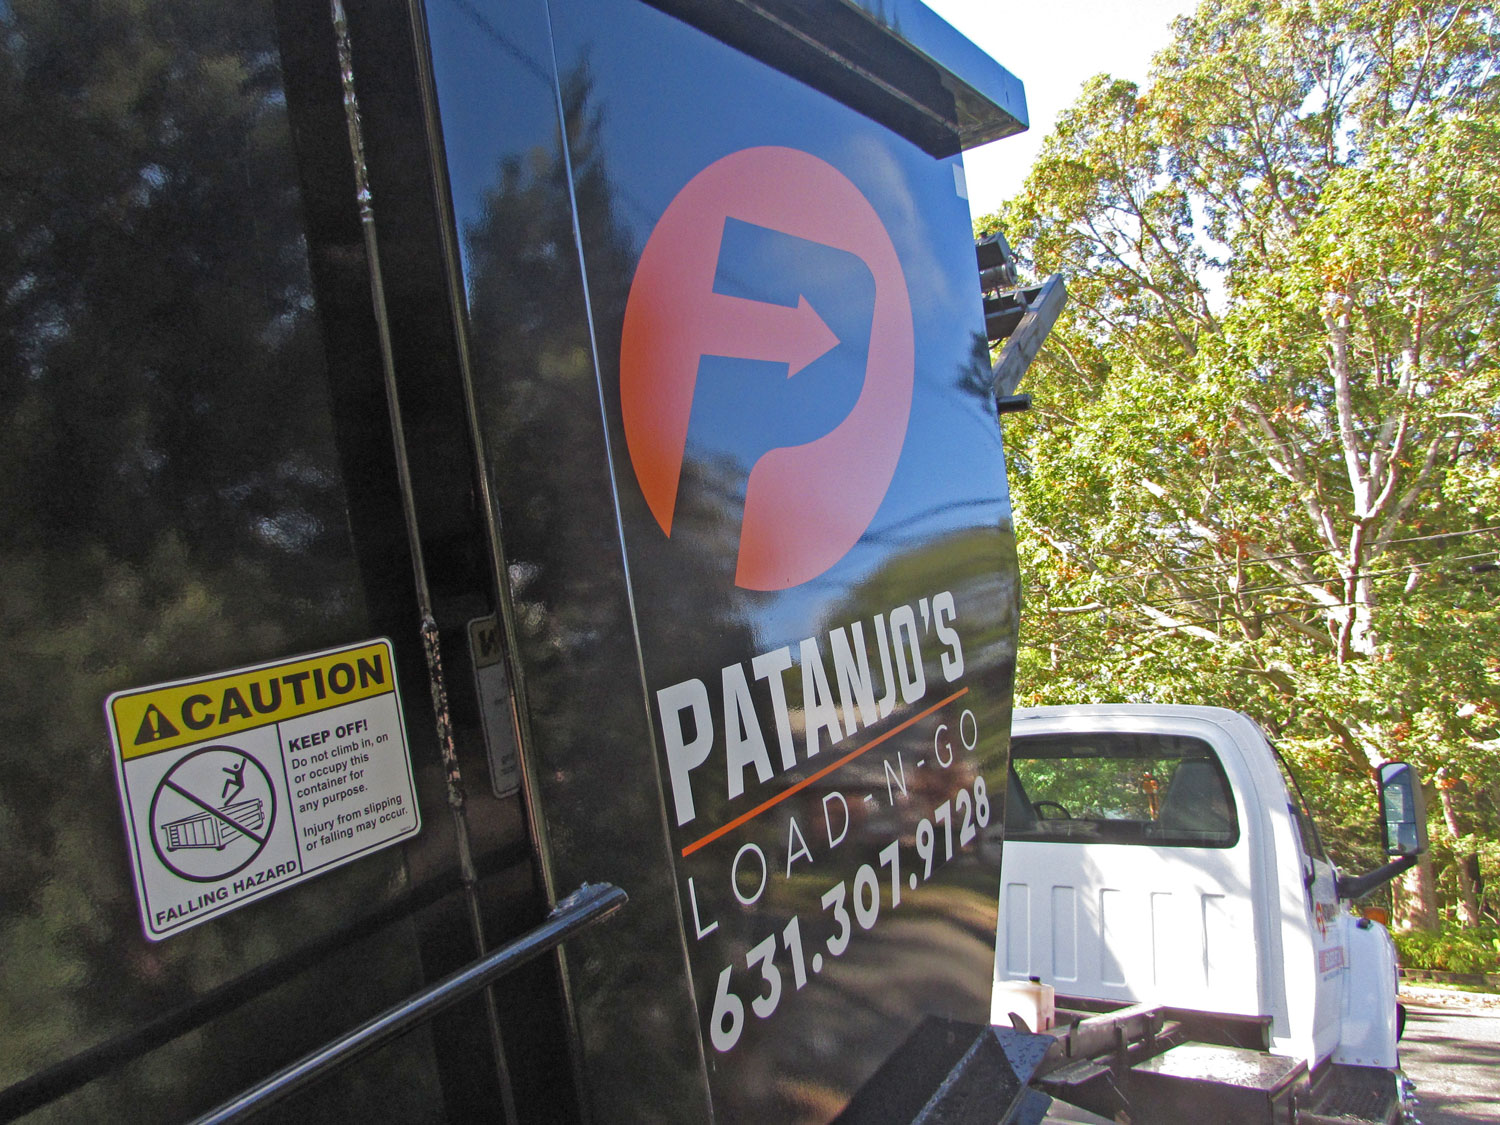 About Patanjo's Load-N-Go